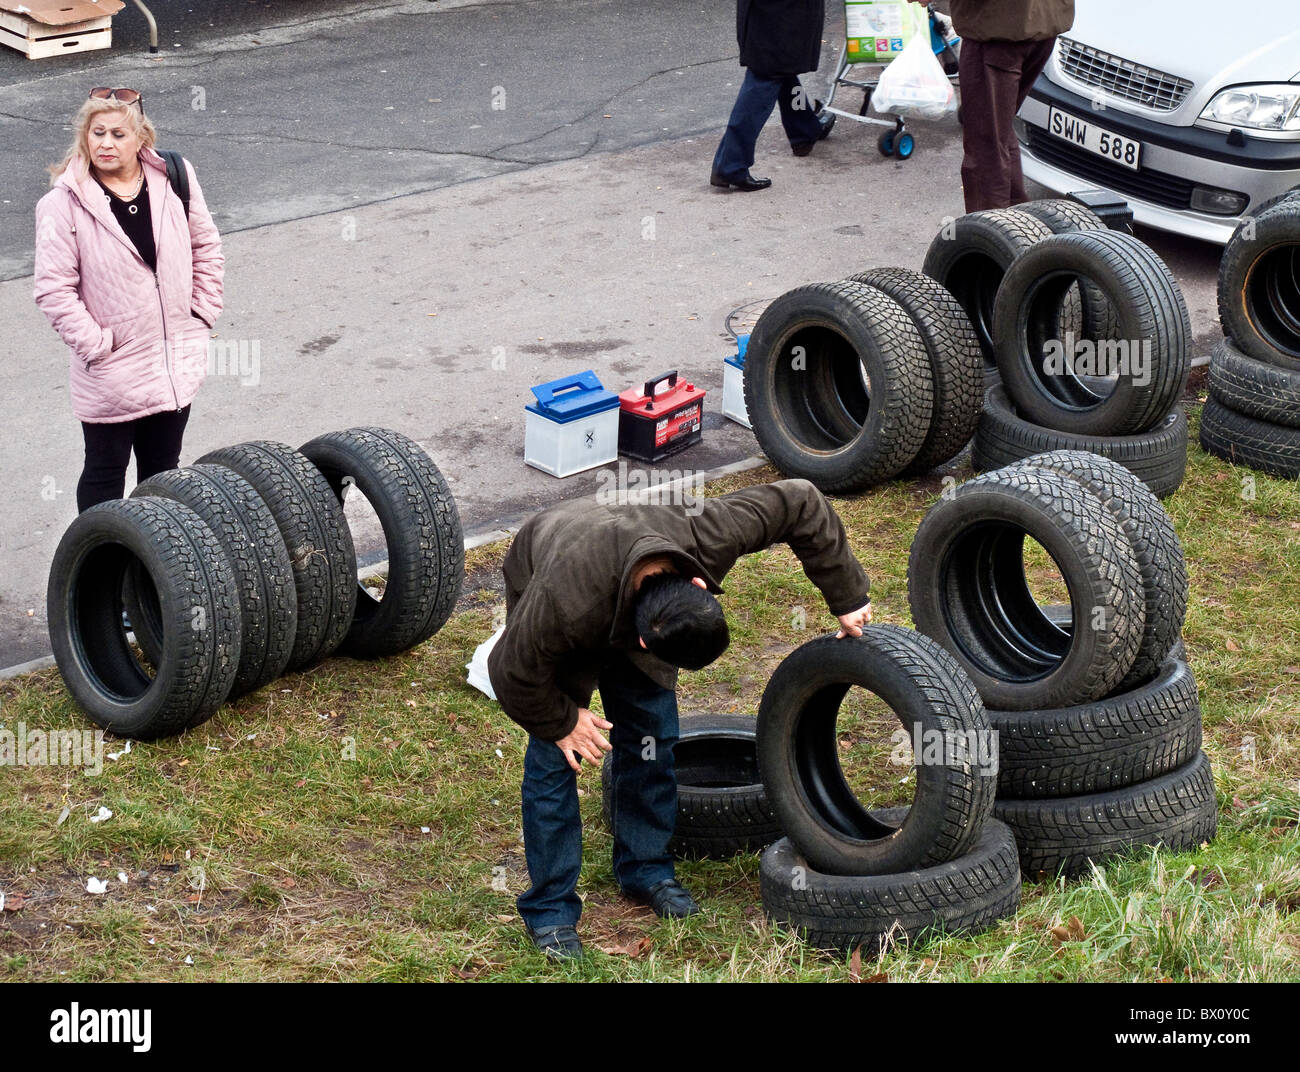 A man carefully examines second hand tires displayed at crowded weekend flea market in outskirt of Gothenburg, Sweden. - Stock Image